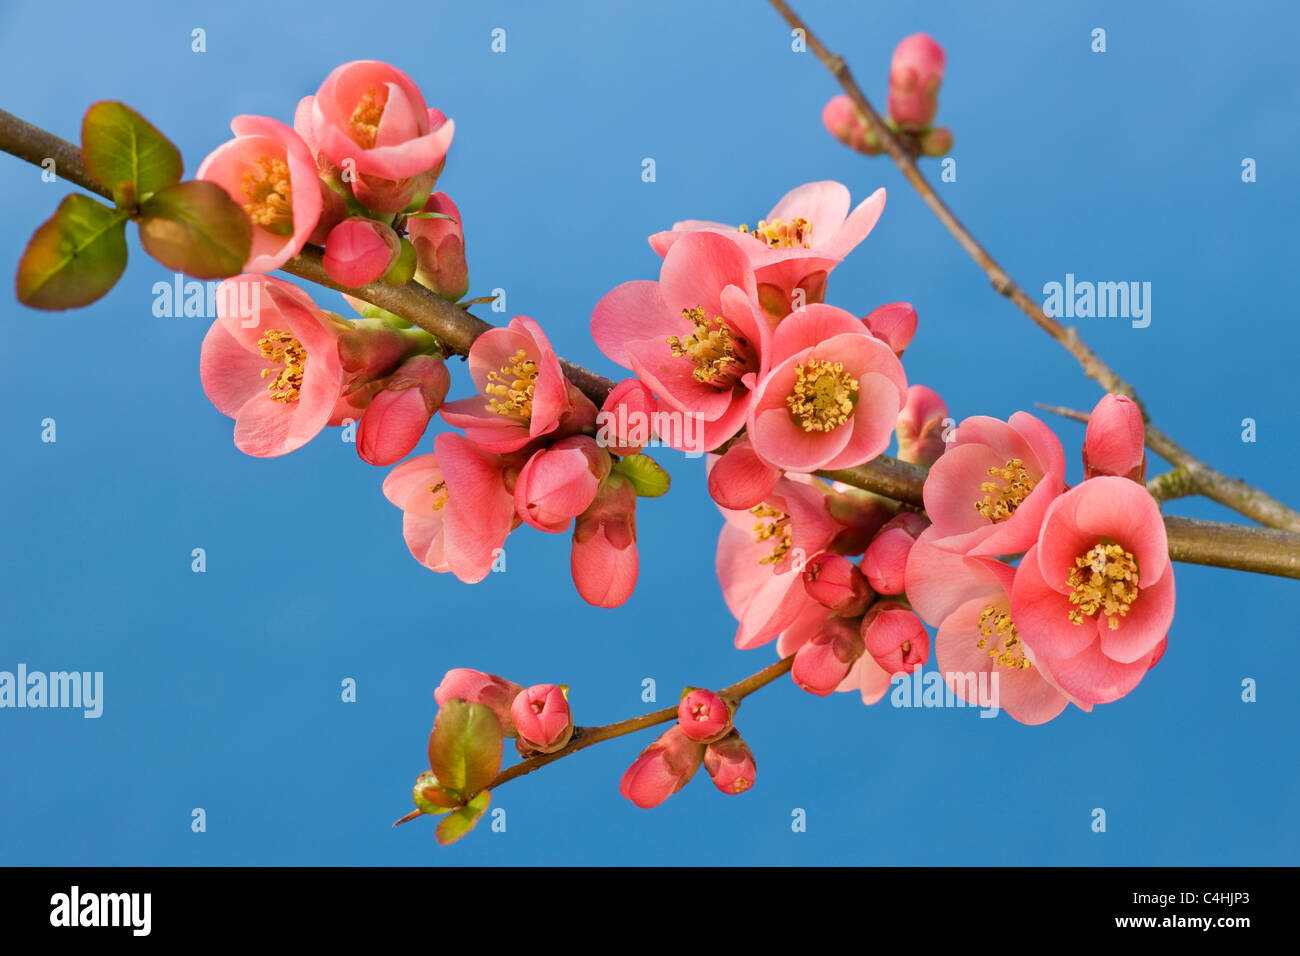 japanese quince chaenomeles japonica in flower stock image - Quince Flower